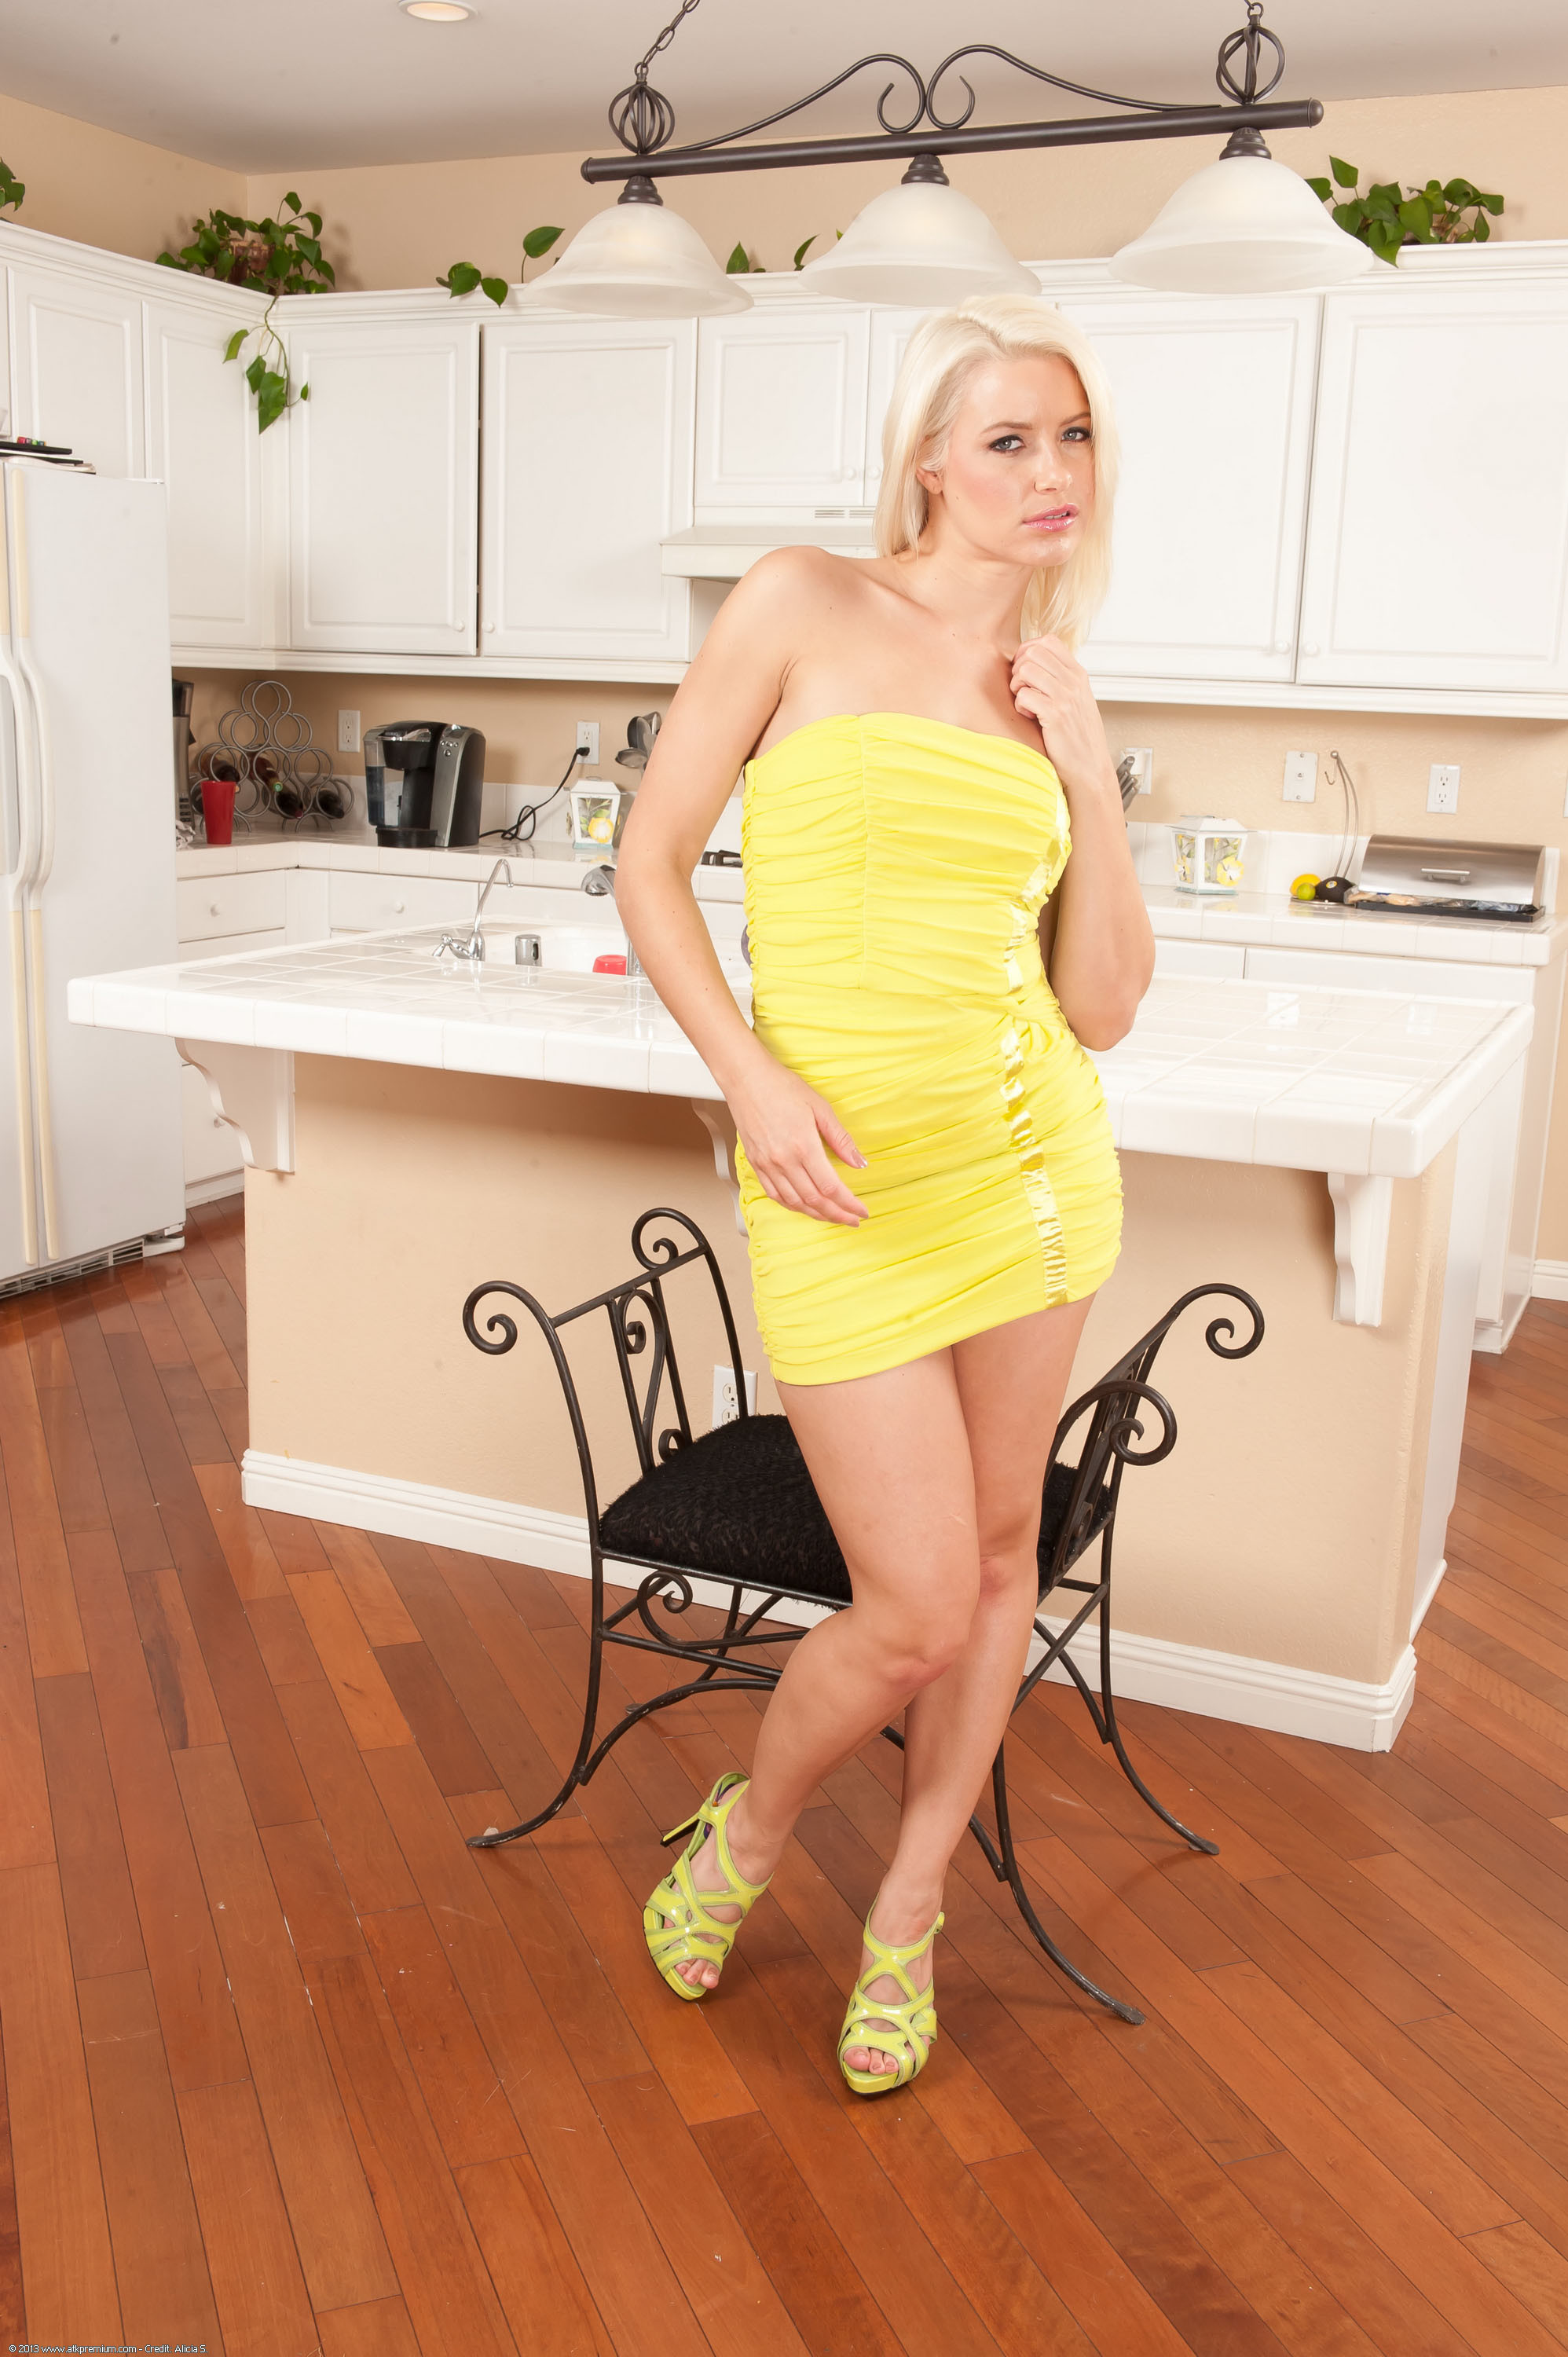 Pin by photo gallery on Anikka albrite | Pinterest